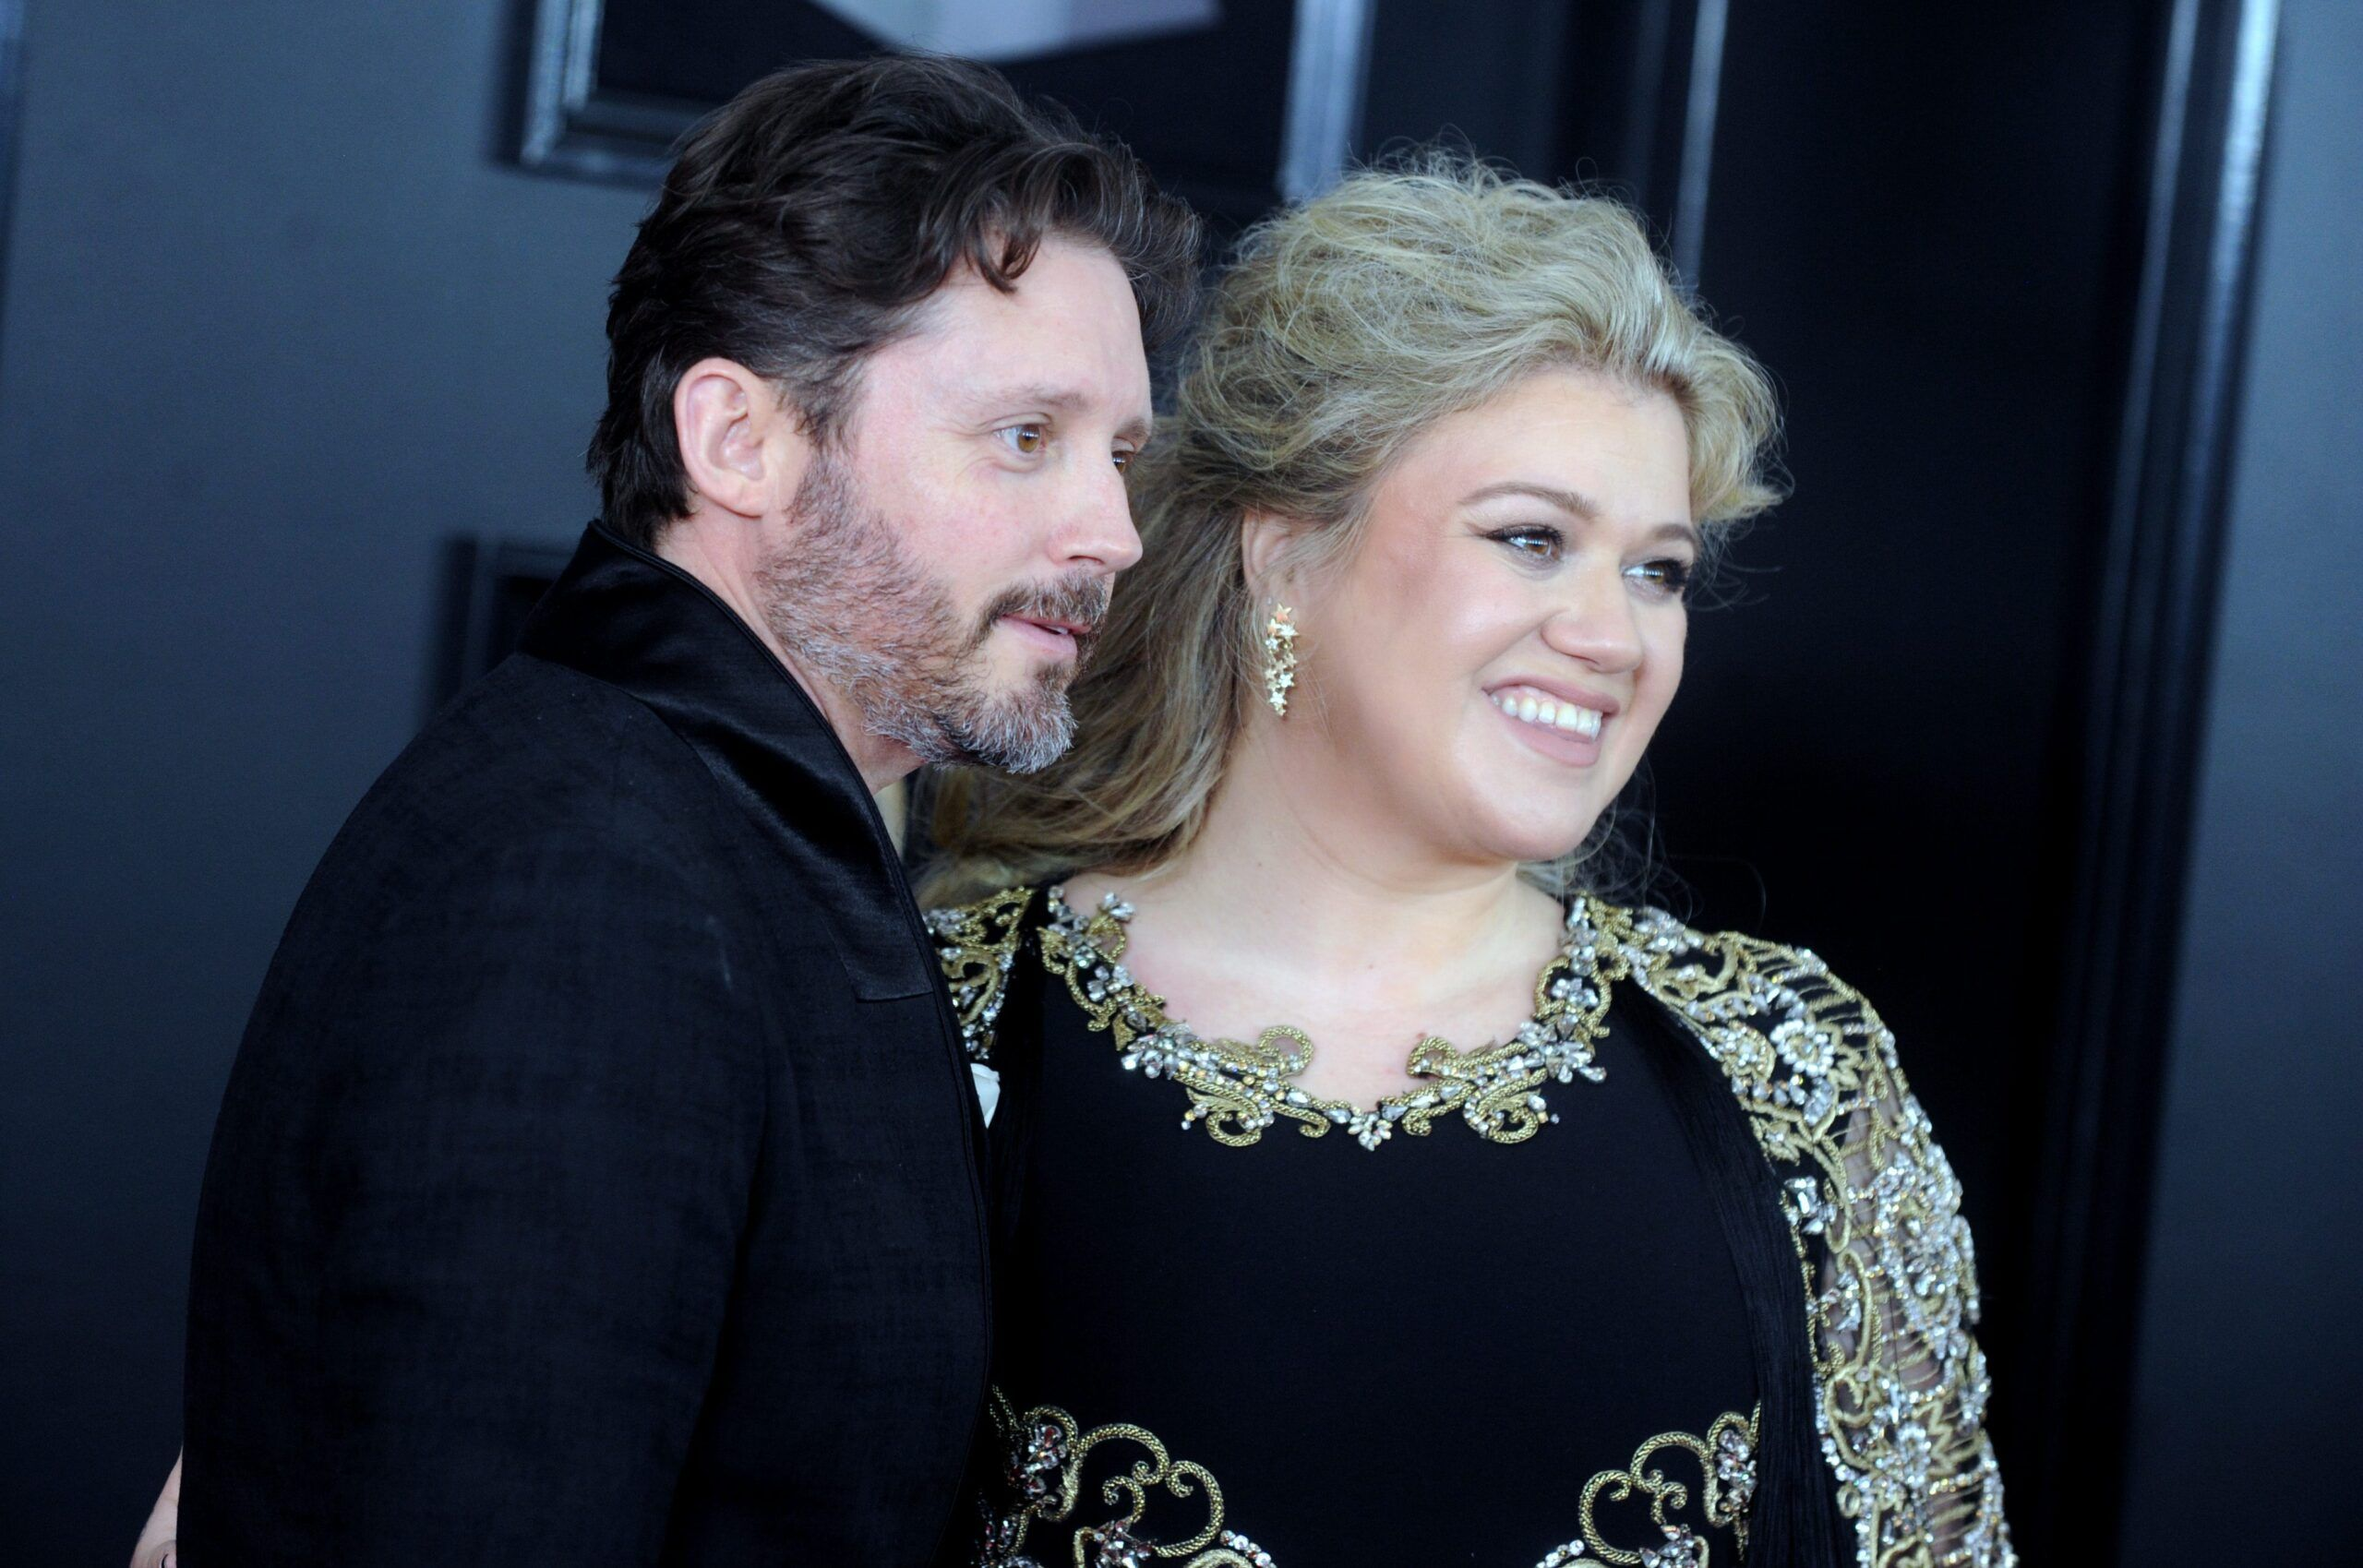 Kelly Clarkson Kids Have Had 'A Lot Of Help' From Therapists Amid Divorce